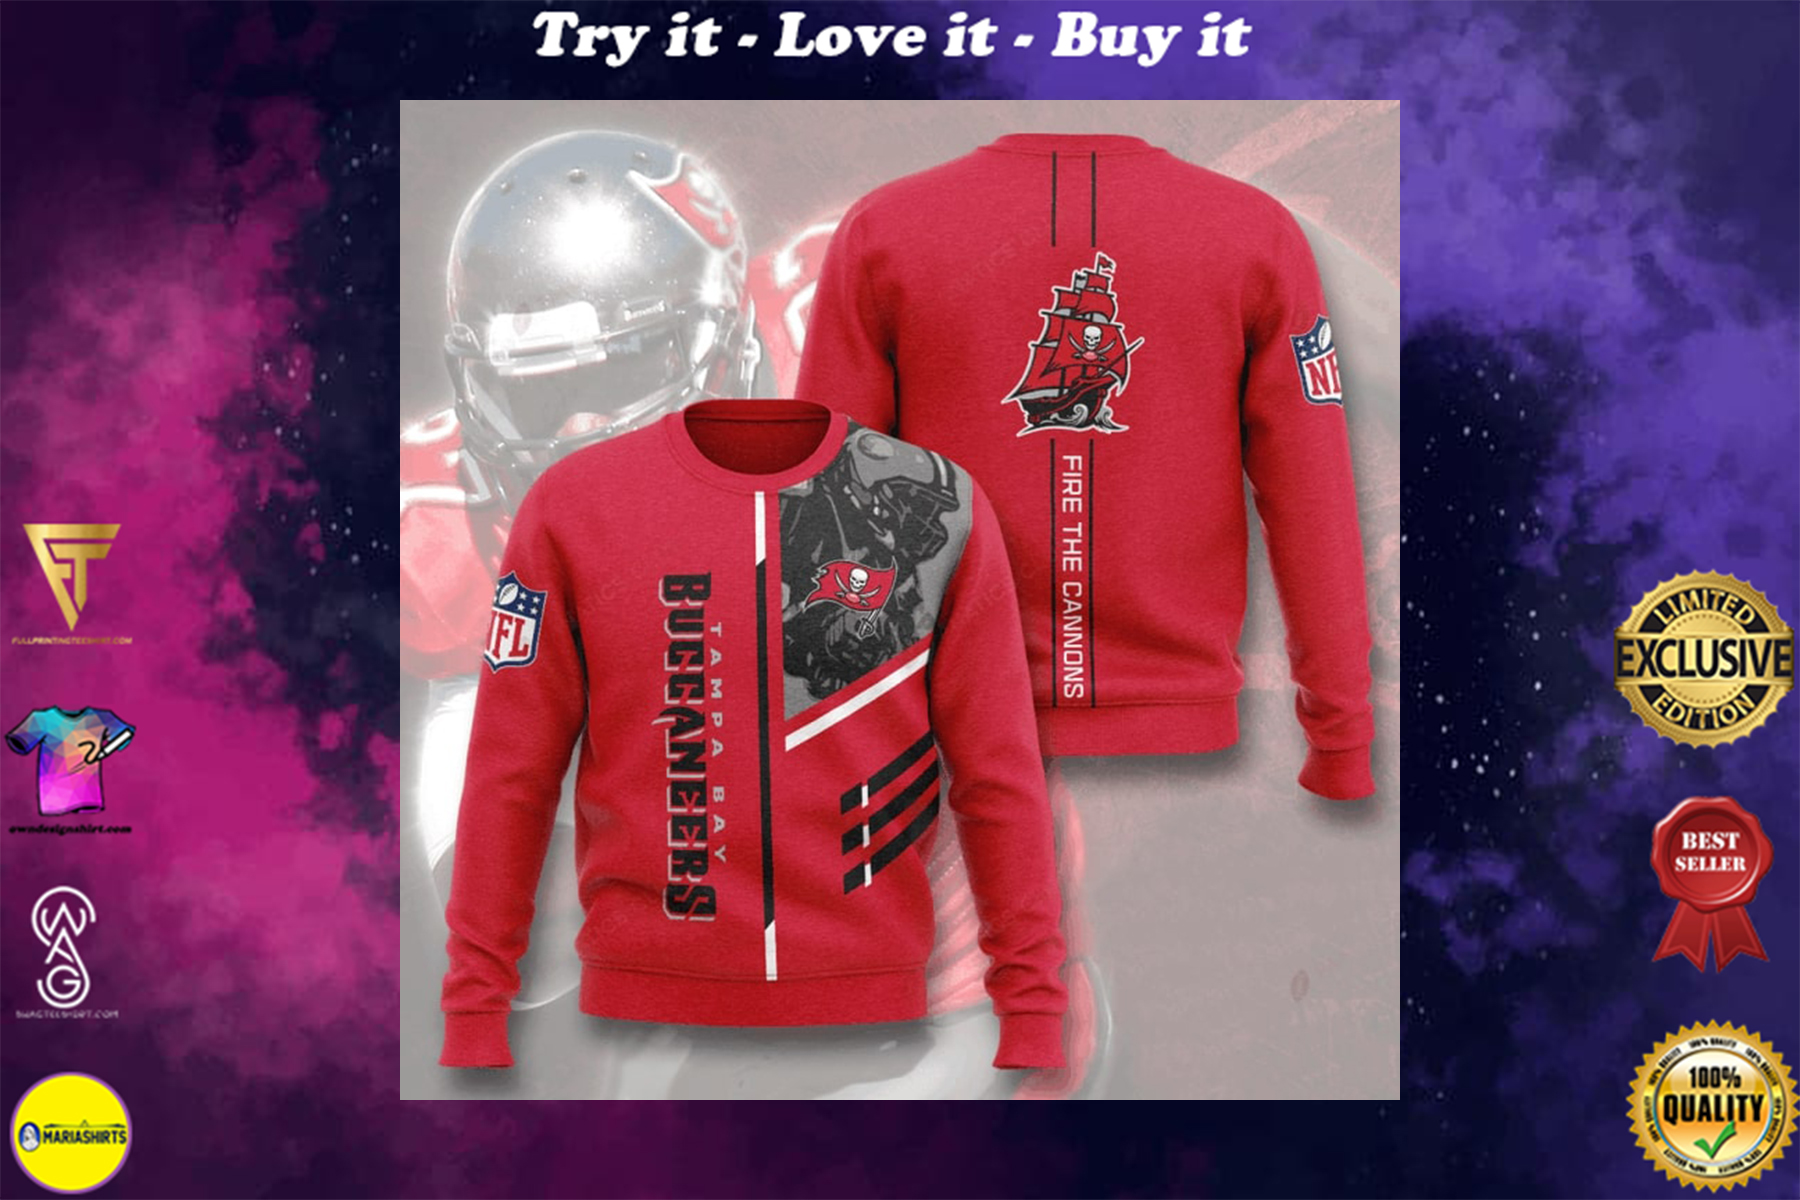 [special edition] tampa bay buccaneers fire the cannons full printing ugly sweater - maria